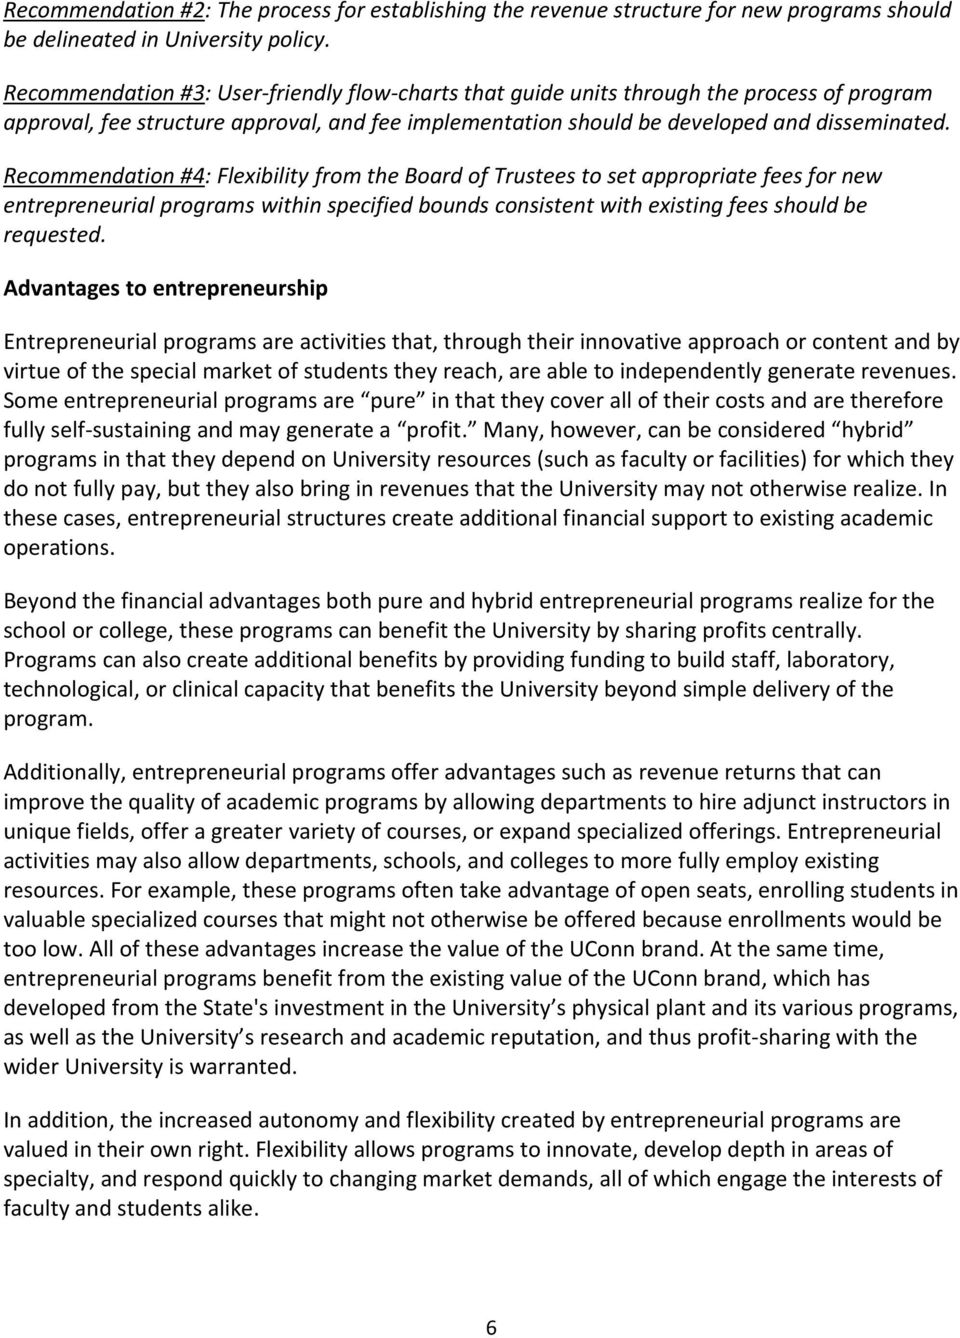 Recommendation #4: Flexibility from the Board of Trustees to set appropriate fees for new entrepreneurial programs within specified bounds consistent with existing fees should be requested.